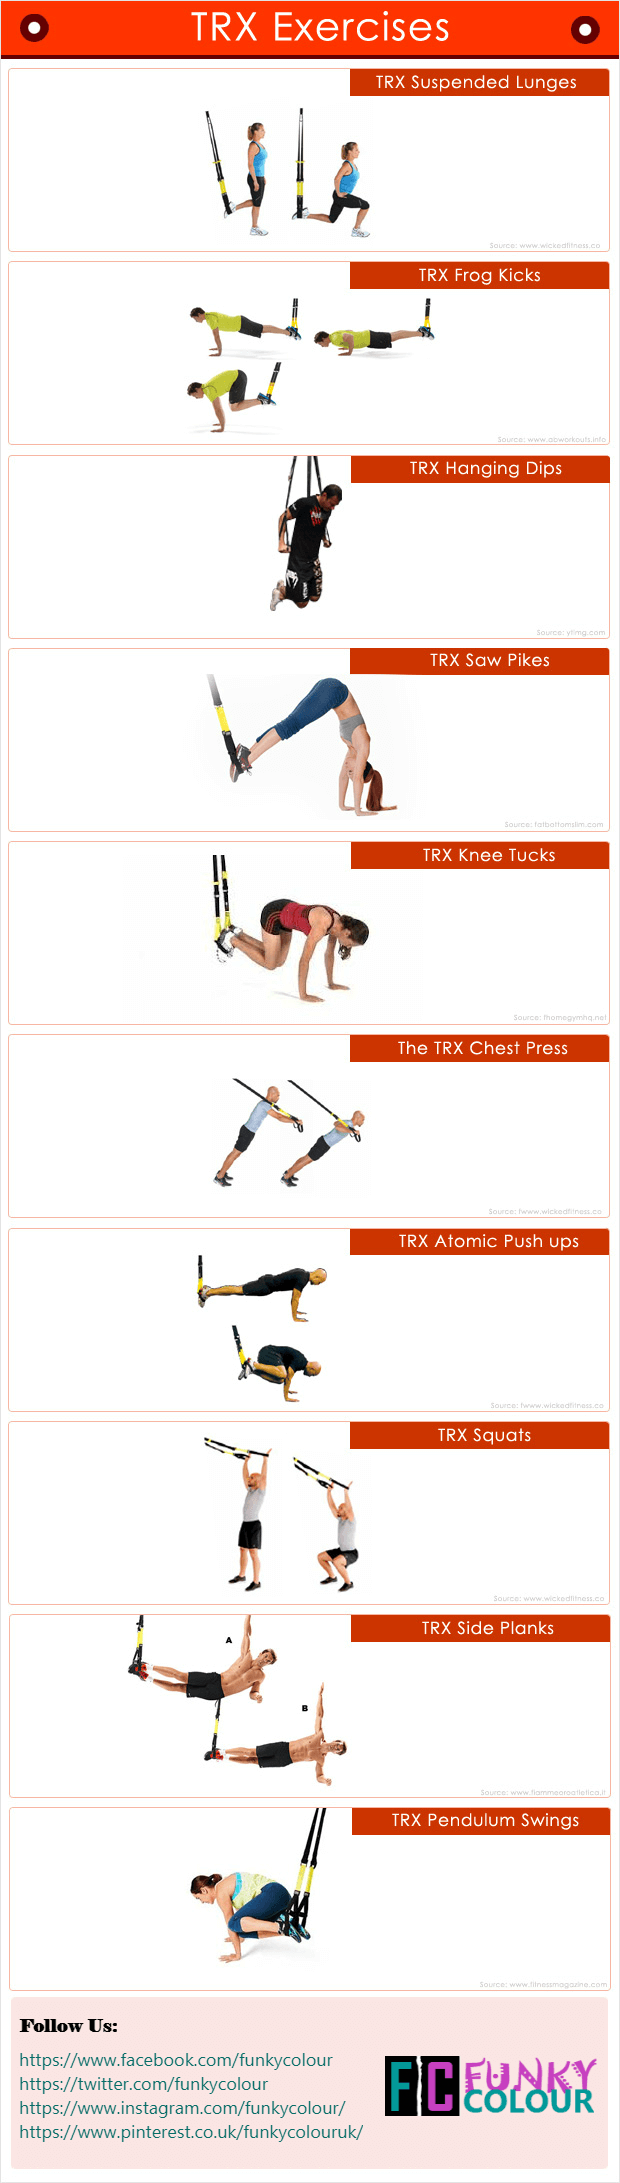 trx-core-exercises-for-beginners